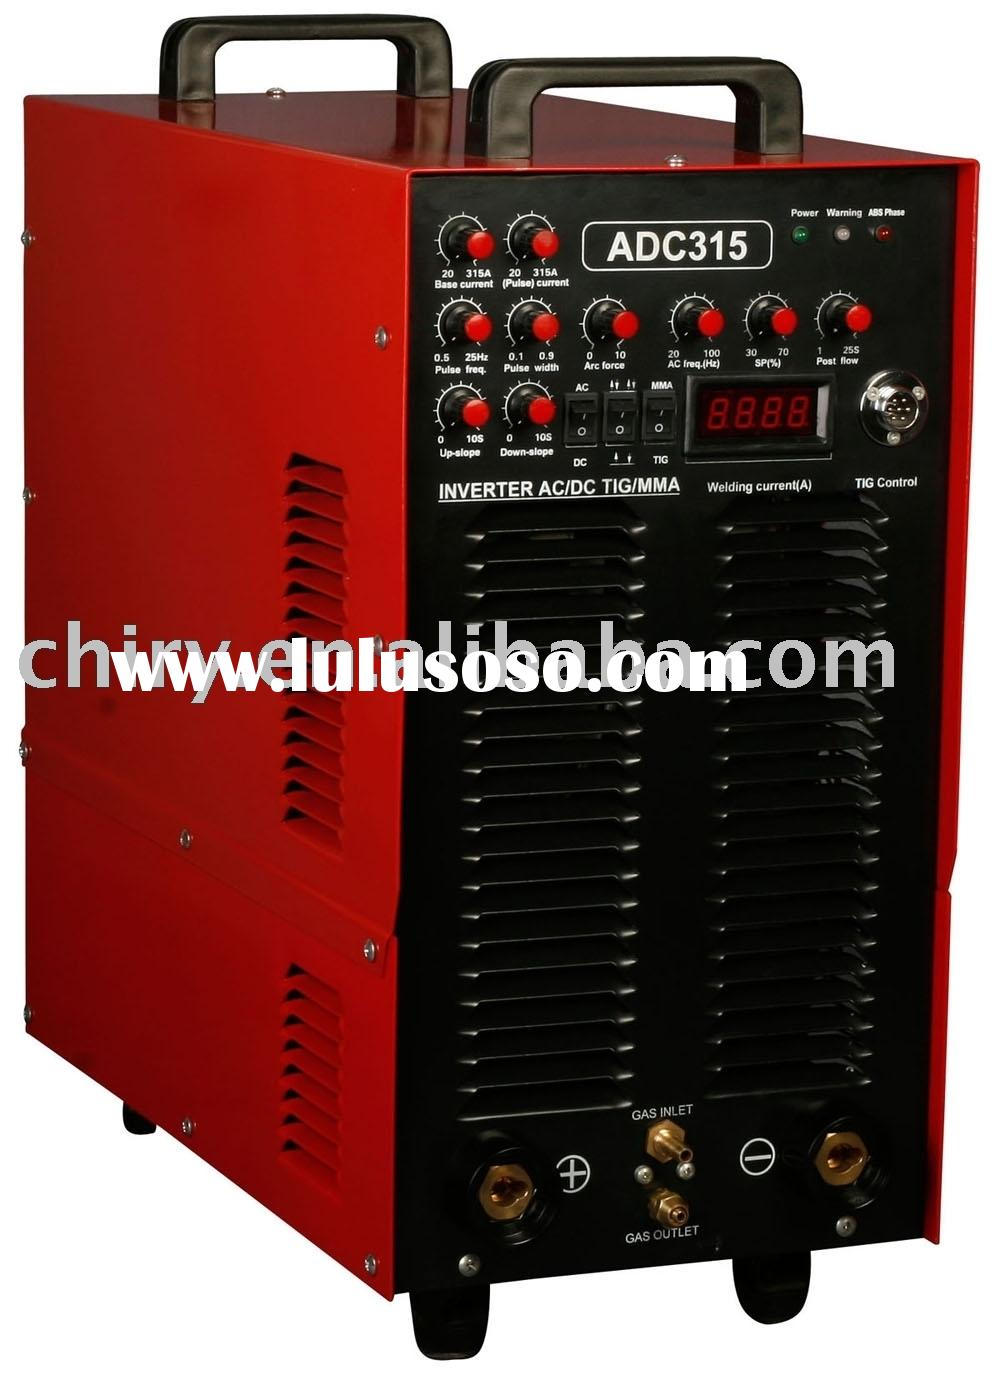 IGBT Inverter AC/DC Pulse TIG/MMA Welding Machine(ADC-200)(welder)